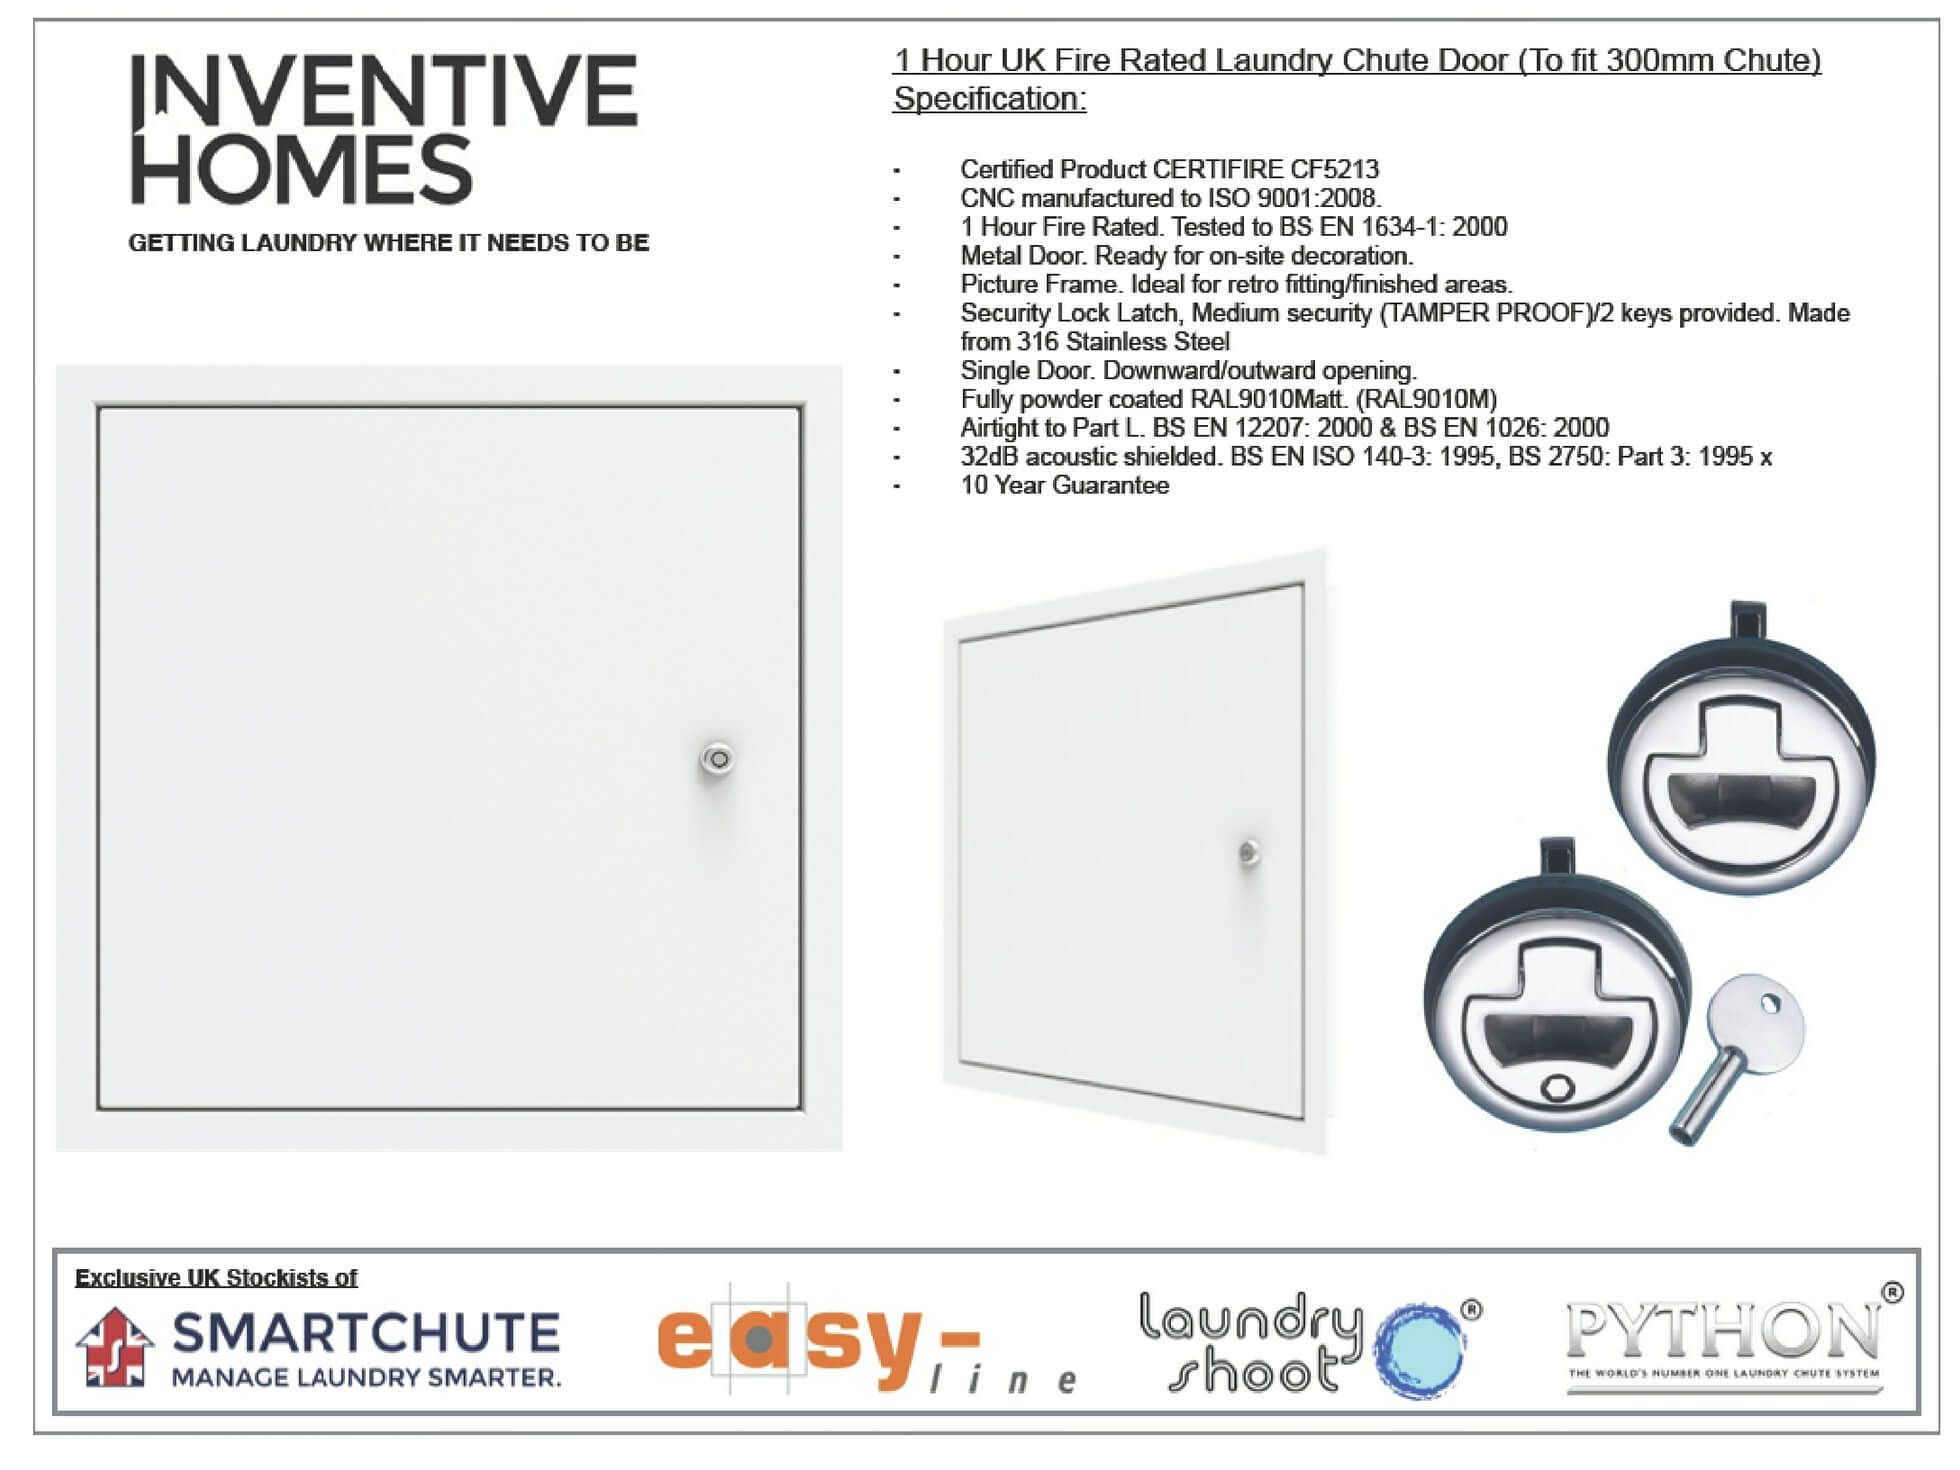 Laundry Chutes Inventive Homes Laundry Chute Laundry Metal Door